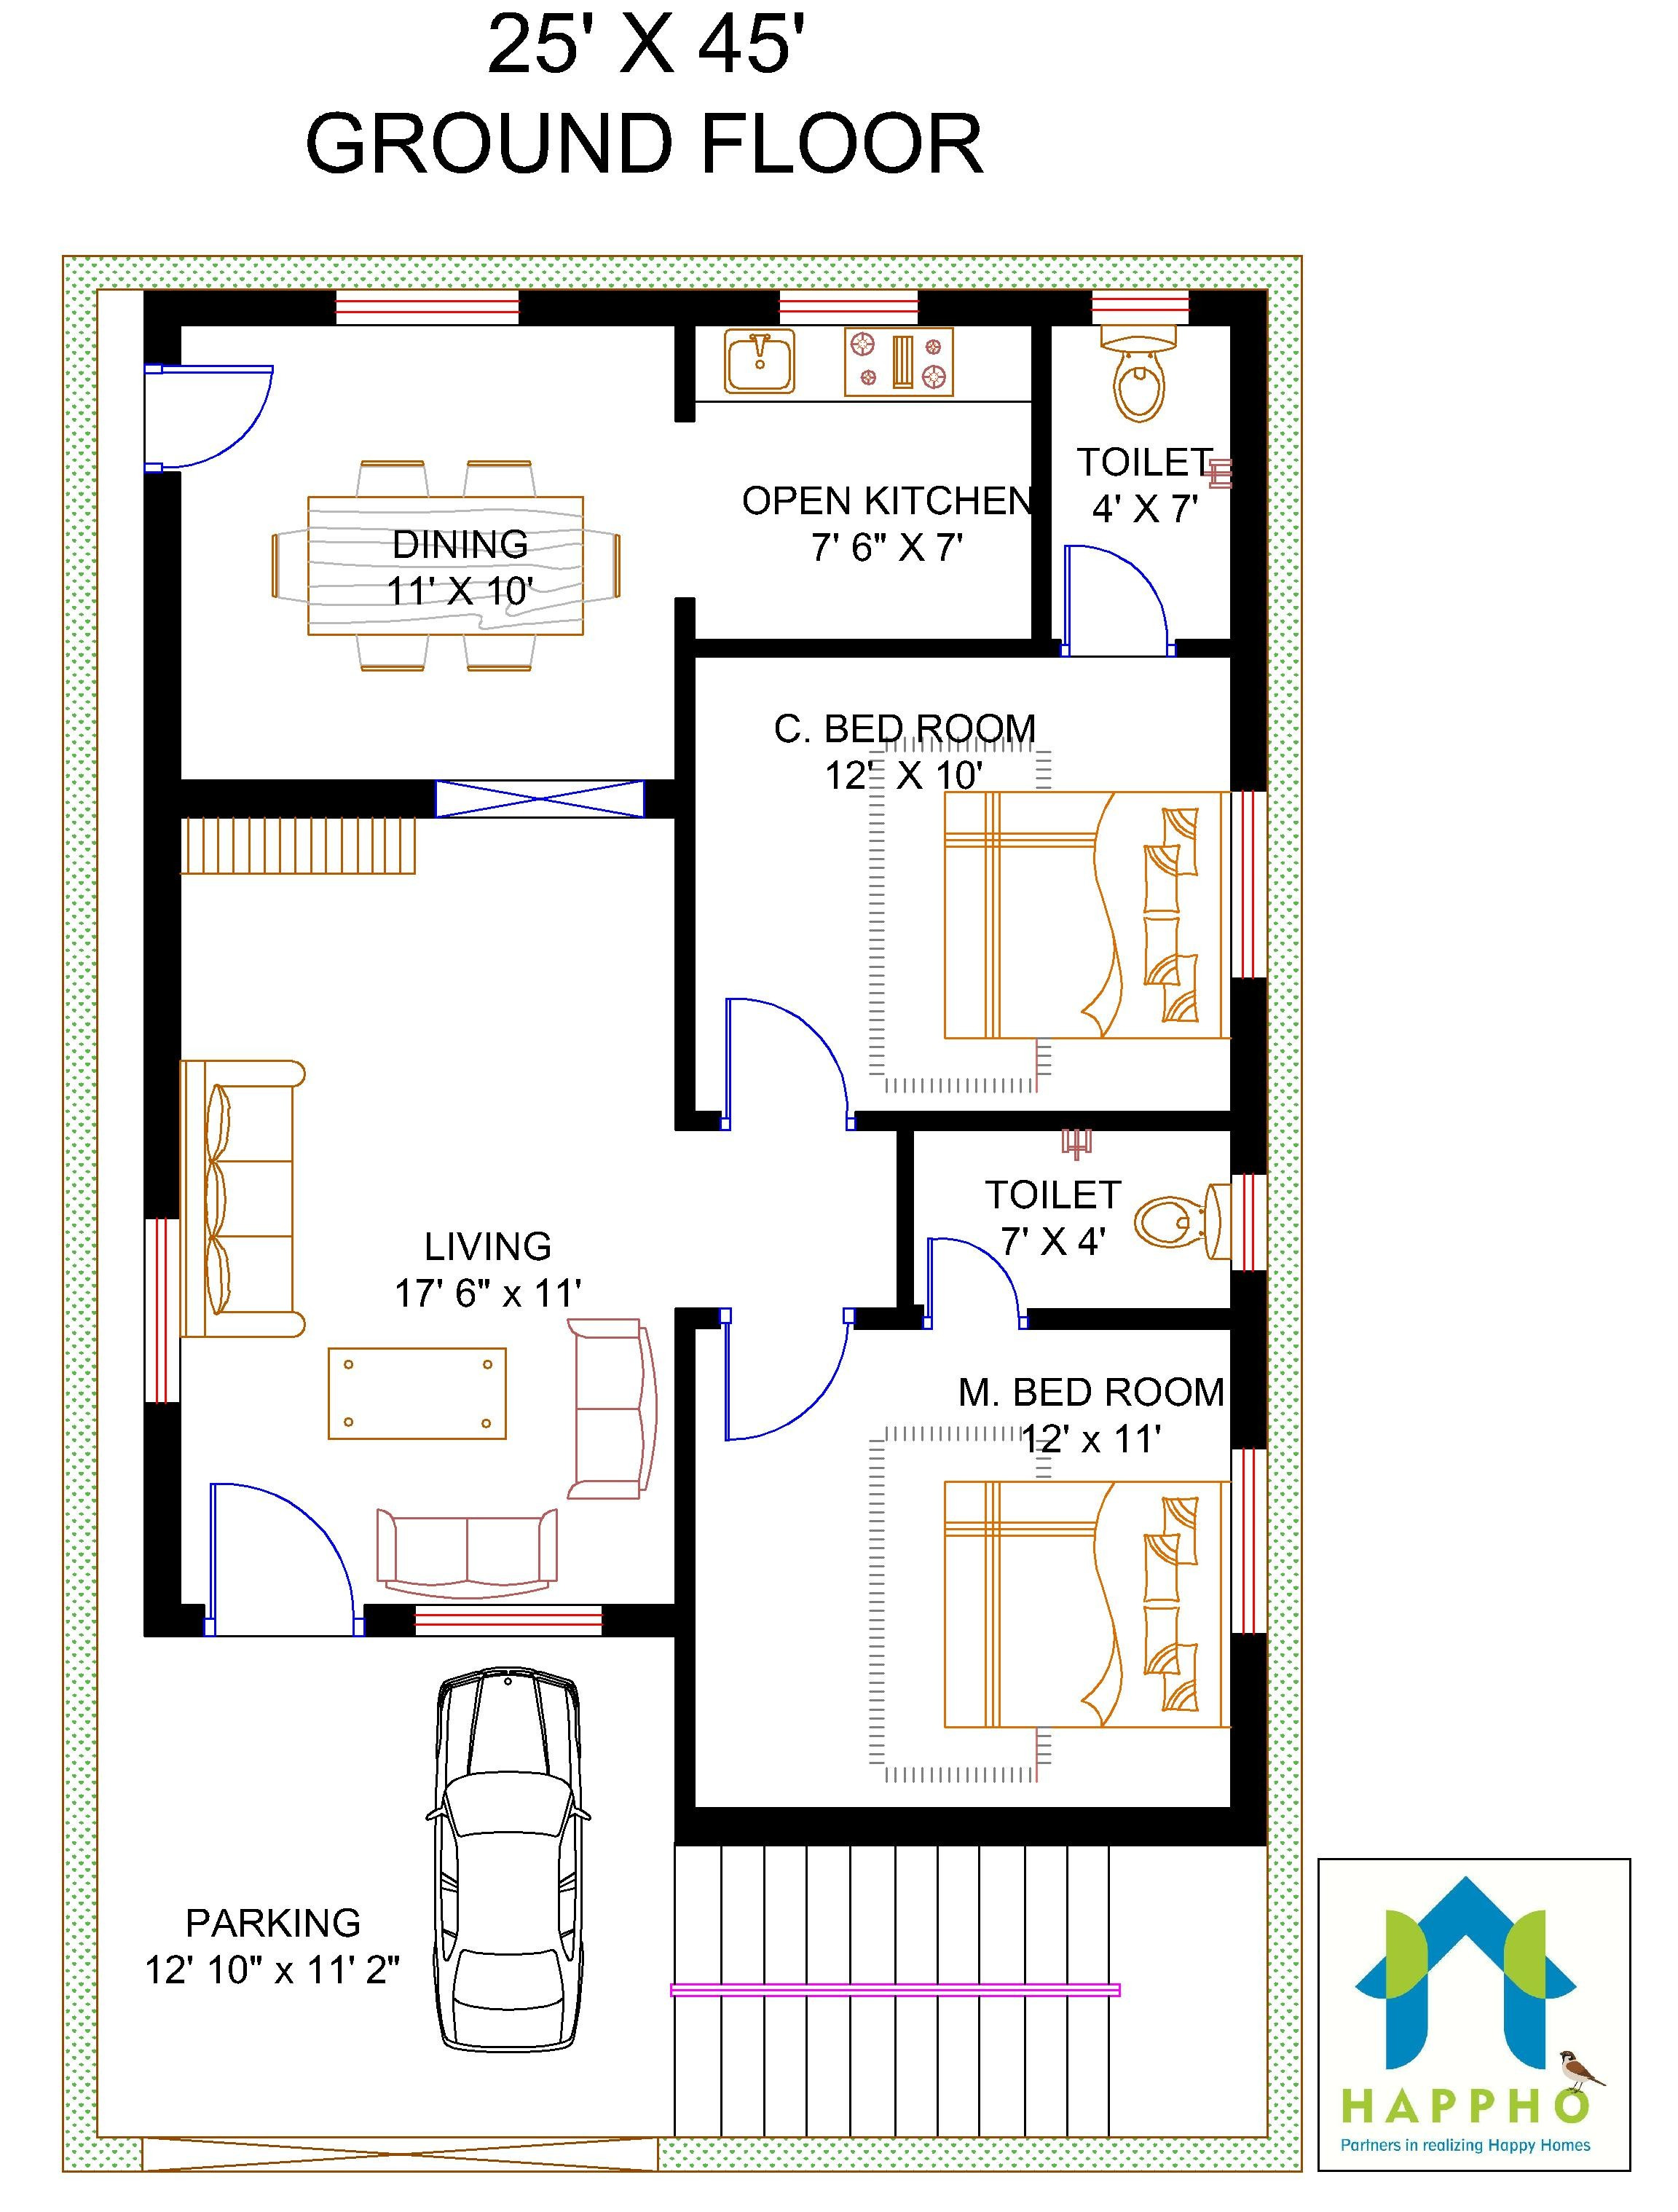 Software to Make House Plans Fresh House Plan Drawing at Paintingvalley